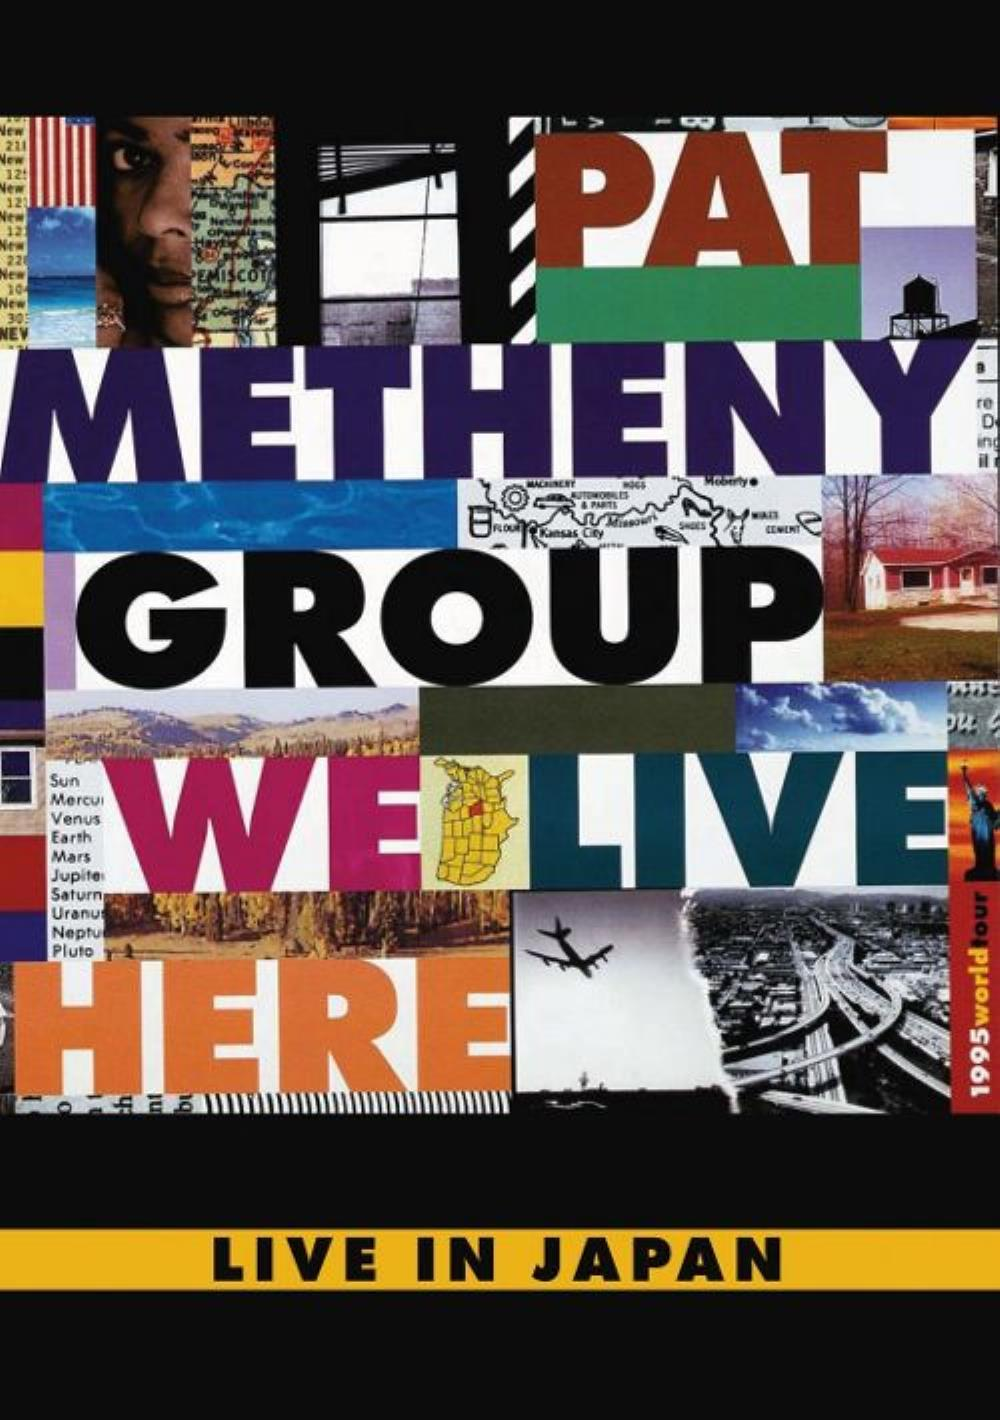 Pat Metheny We Live Here - Live in Japan album cover